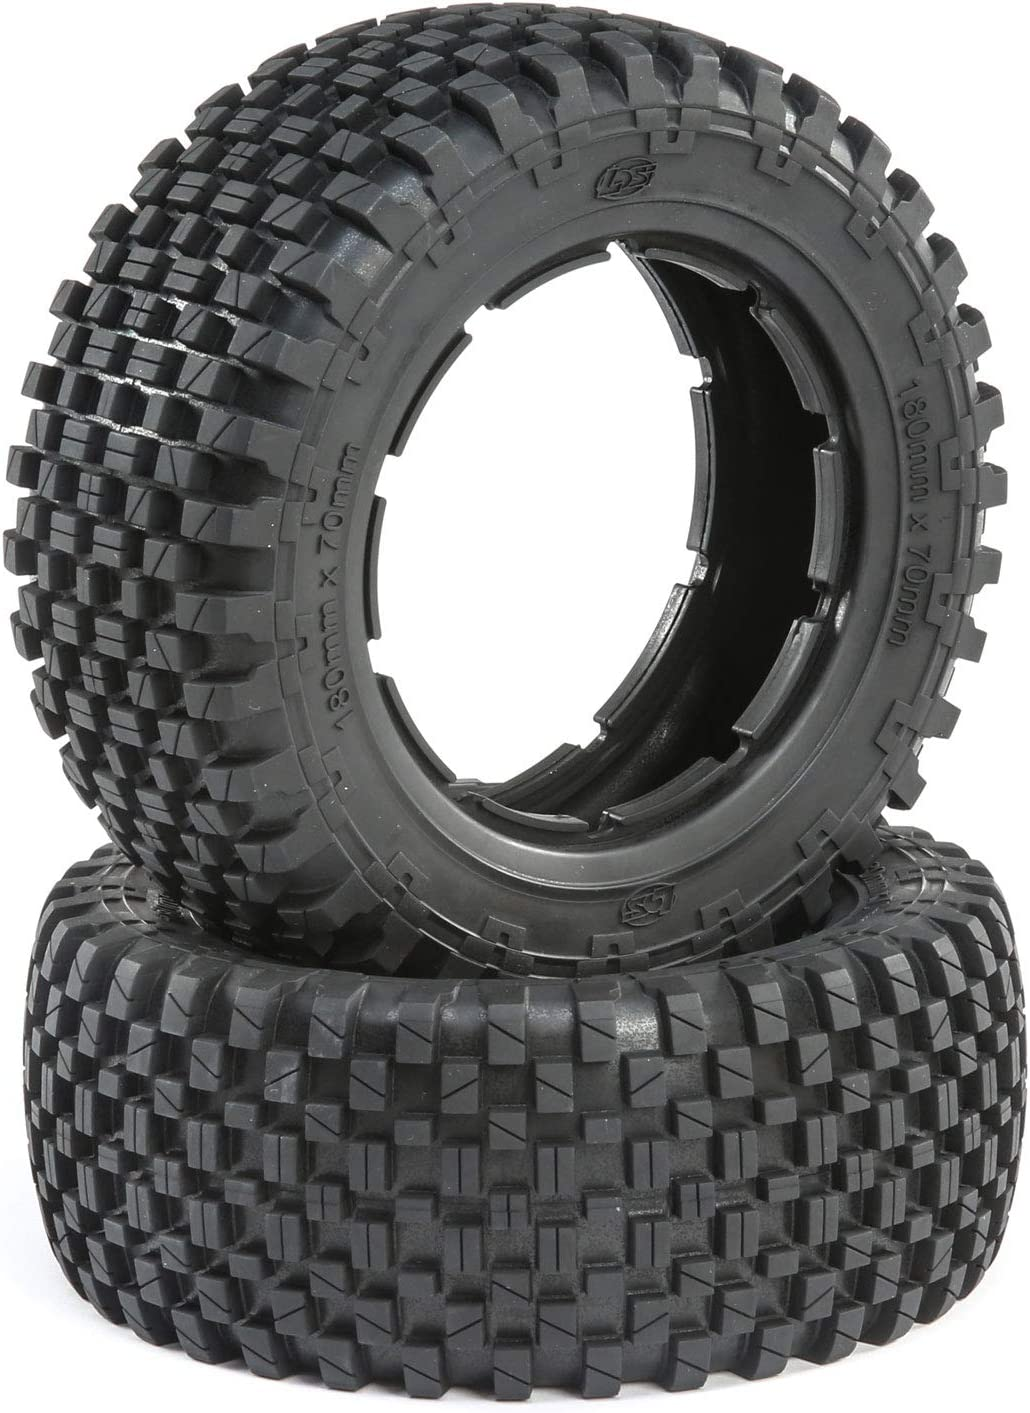 Losi 1 5 Long-awaited Front Rear 4.75 Wheel and Hex Quality inspection 24mm Grey Beadlock Set